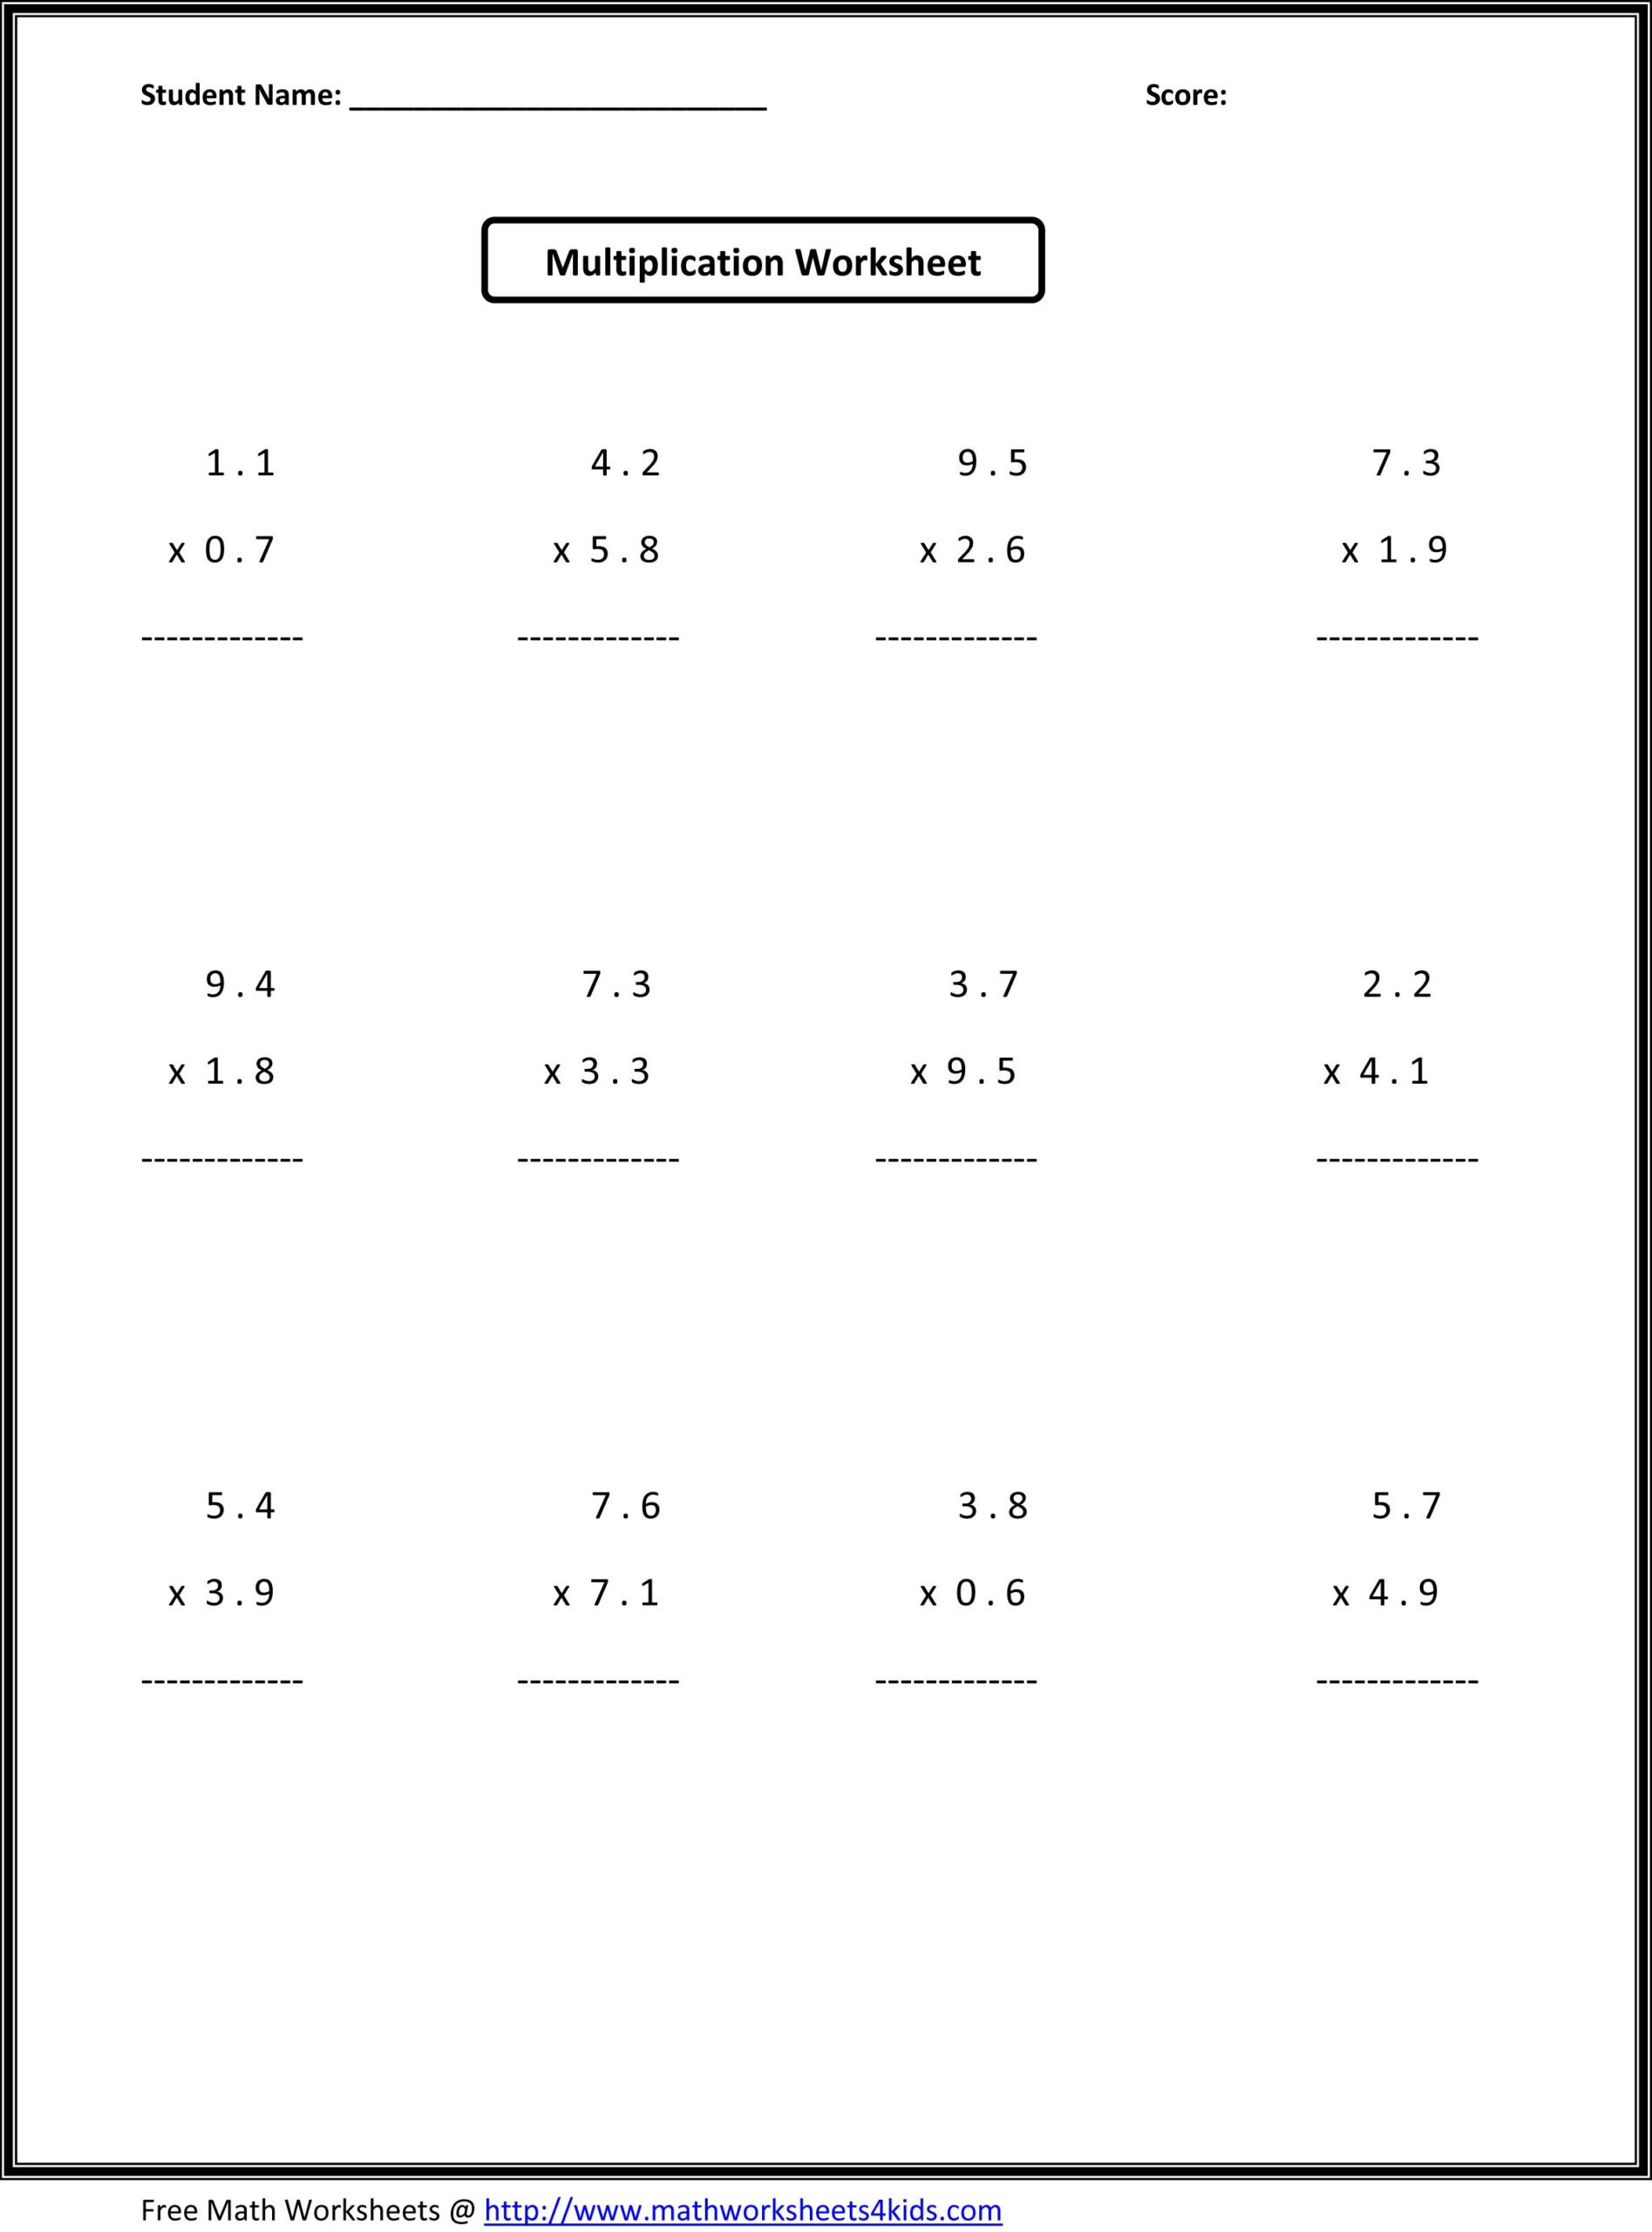 6th Grade Math Puzzle Worksheets Sixth Grade Math Sheets Printable Middle School 6th